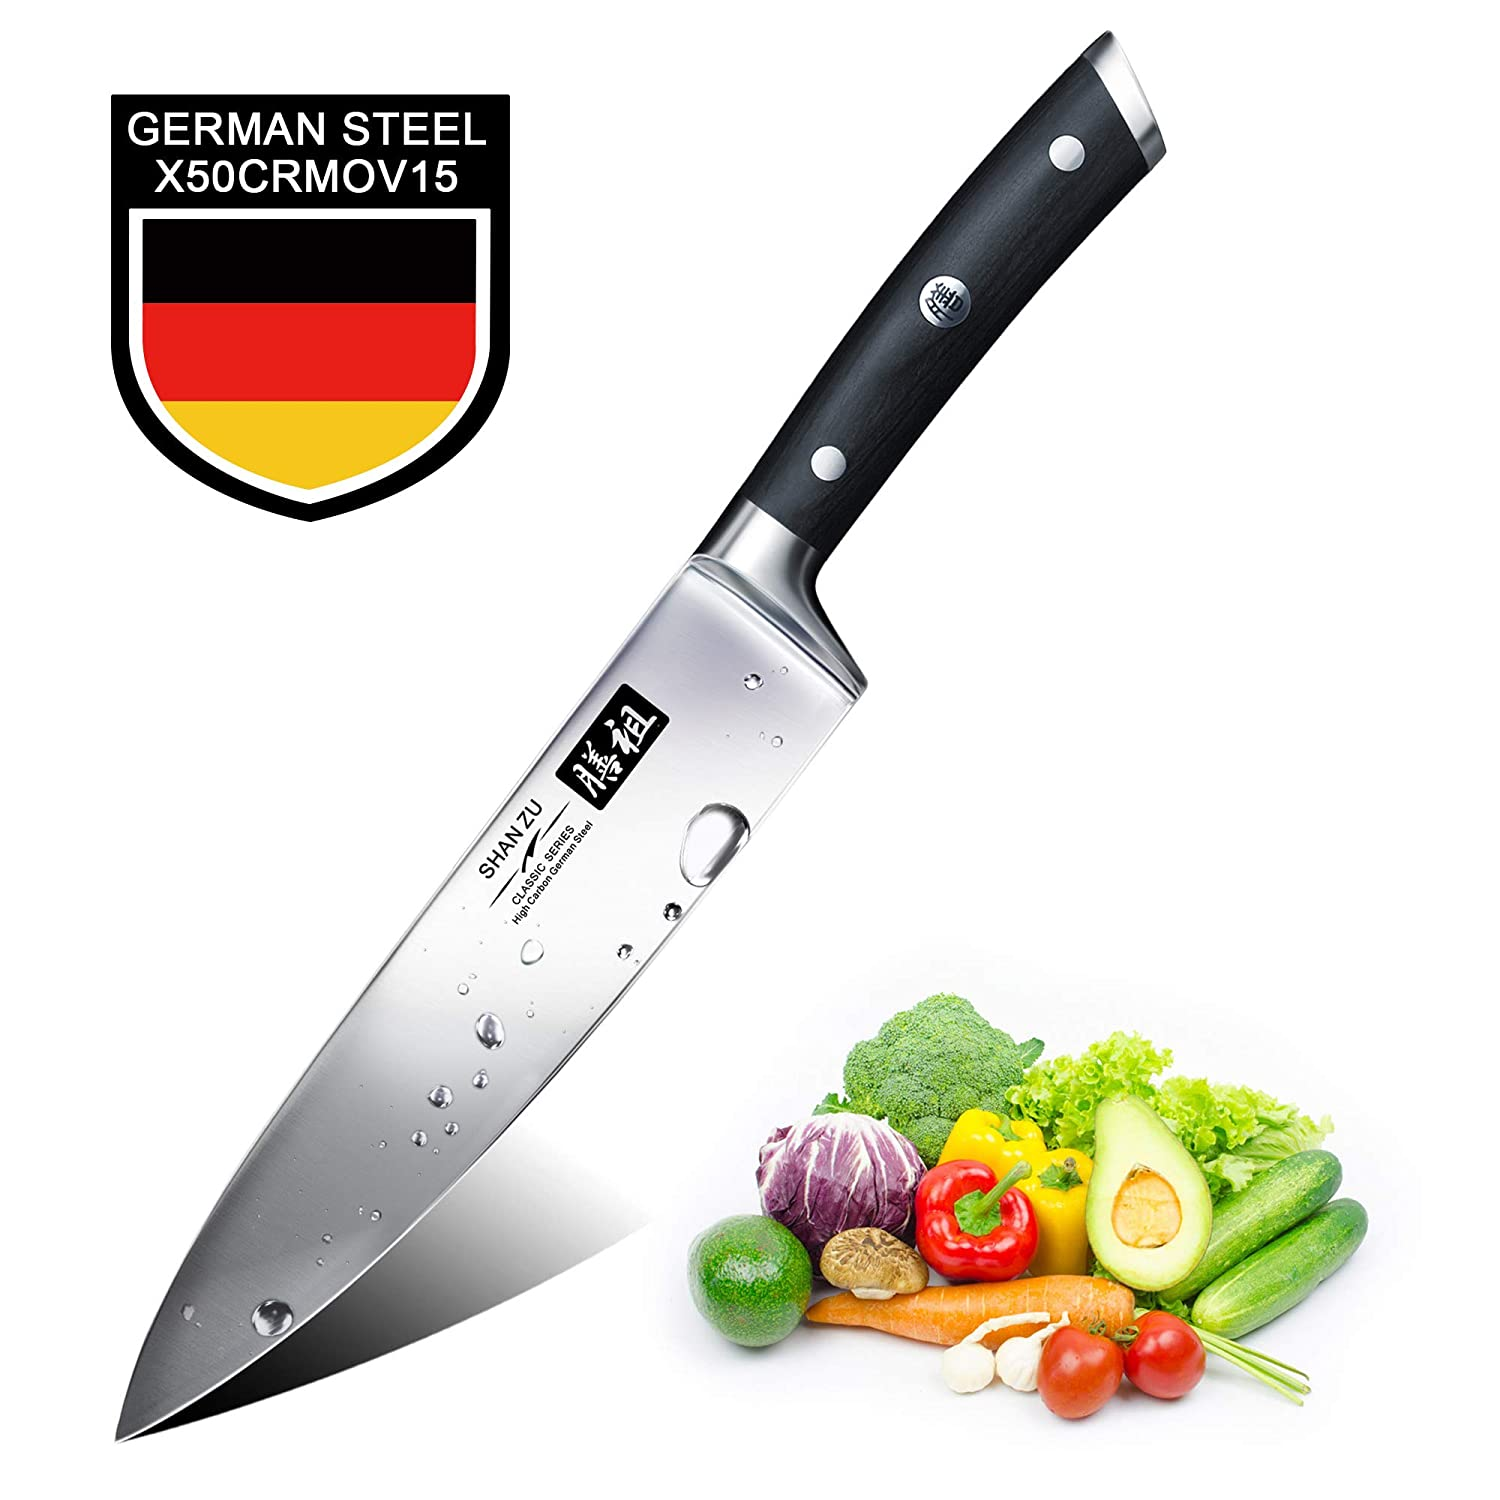 Chef Knife,SHAN ZU Pro Kitchen Knife 8 Inch High Carbon German Stainless Steel Cooking Knife with Ergonomic Handle and Sheath, Rust Free and Wear Resistant, Perfect for Kitchen Home Restaurant